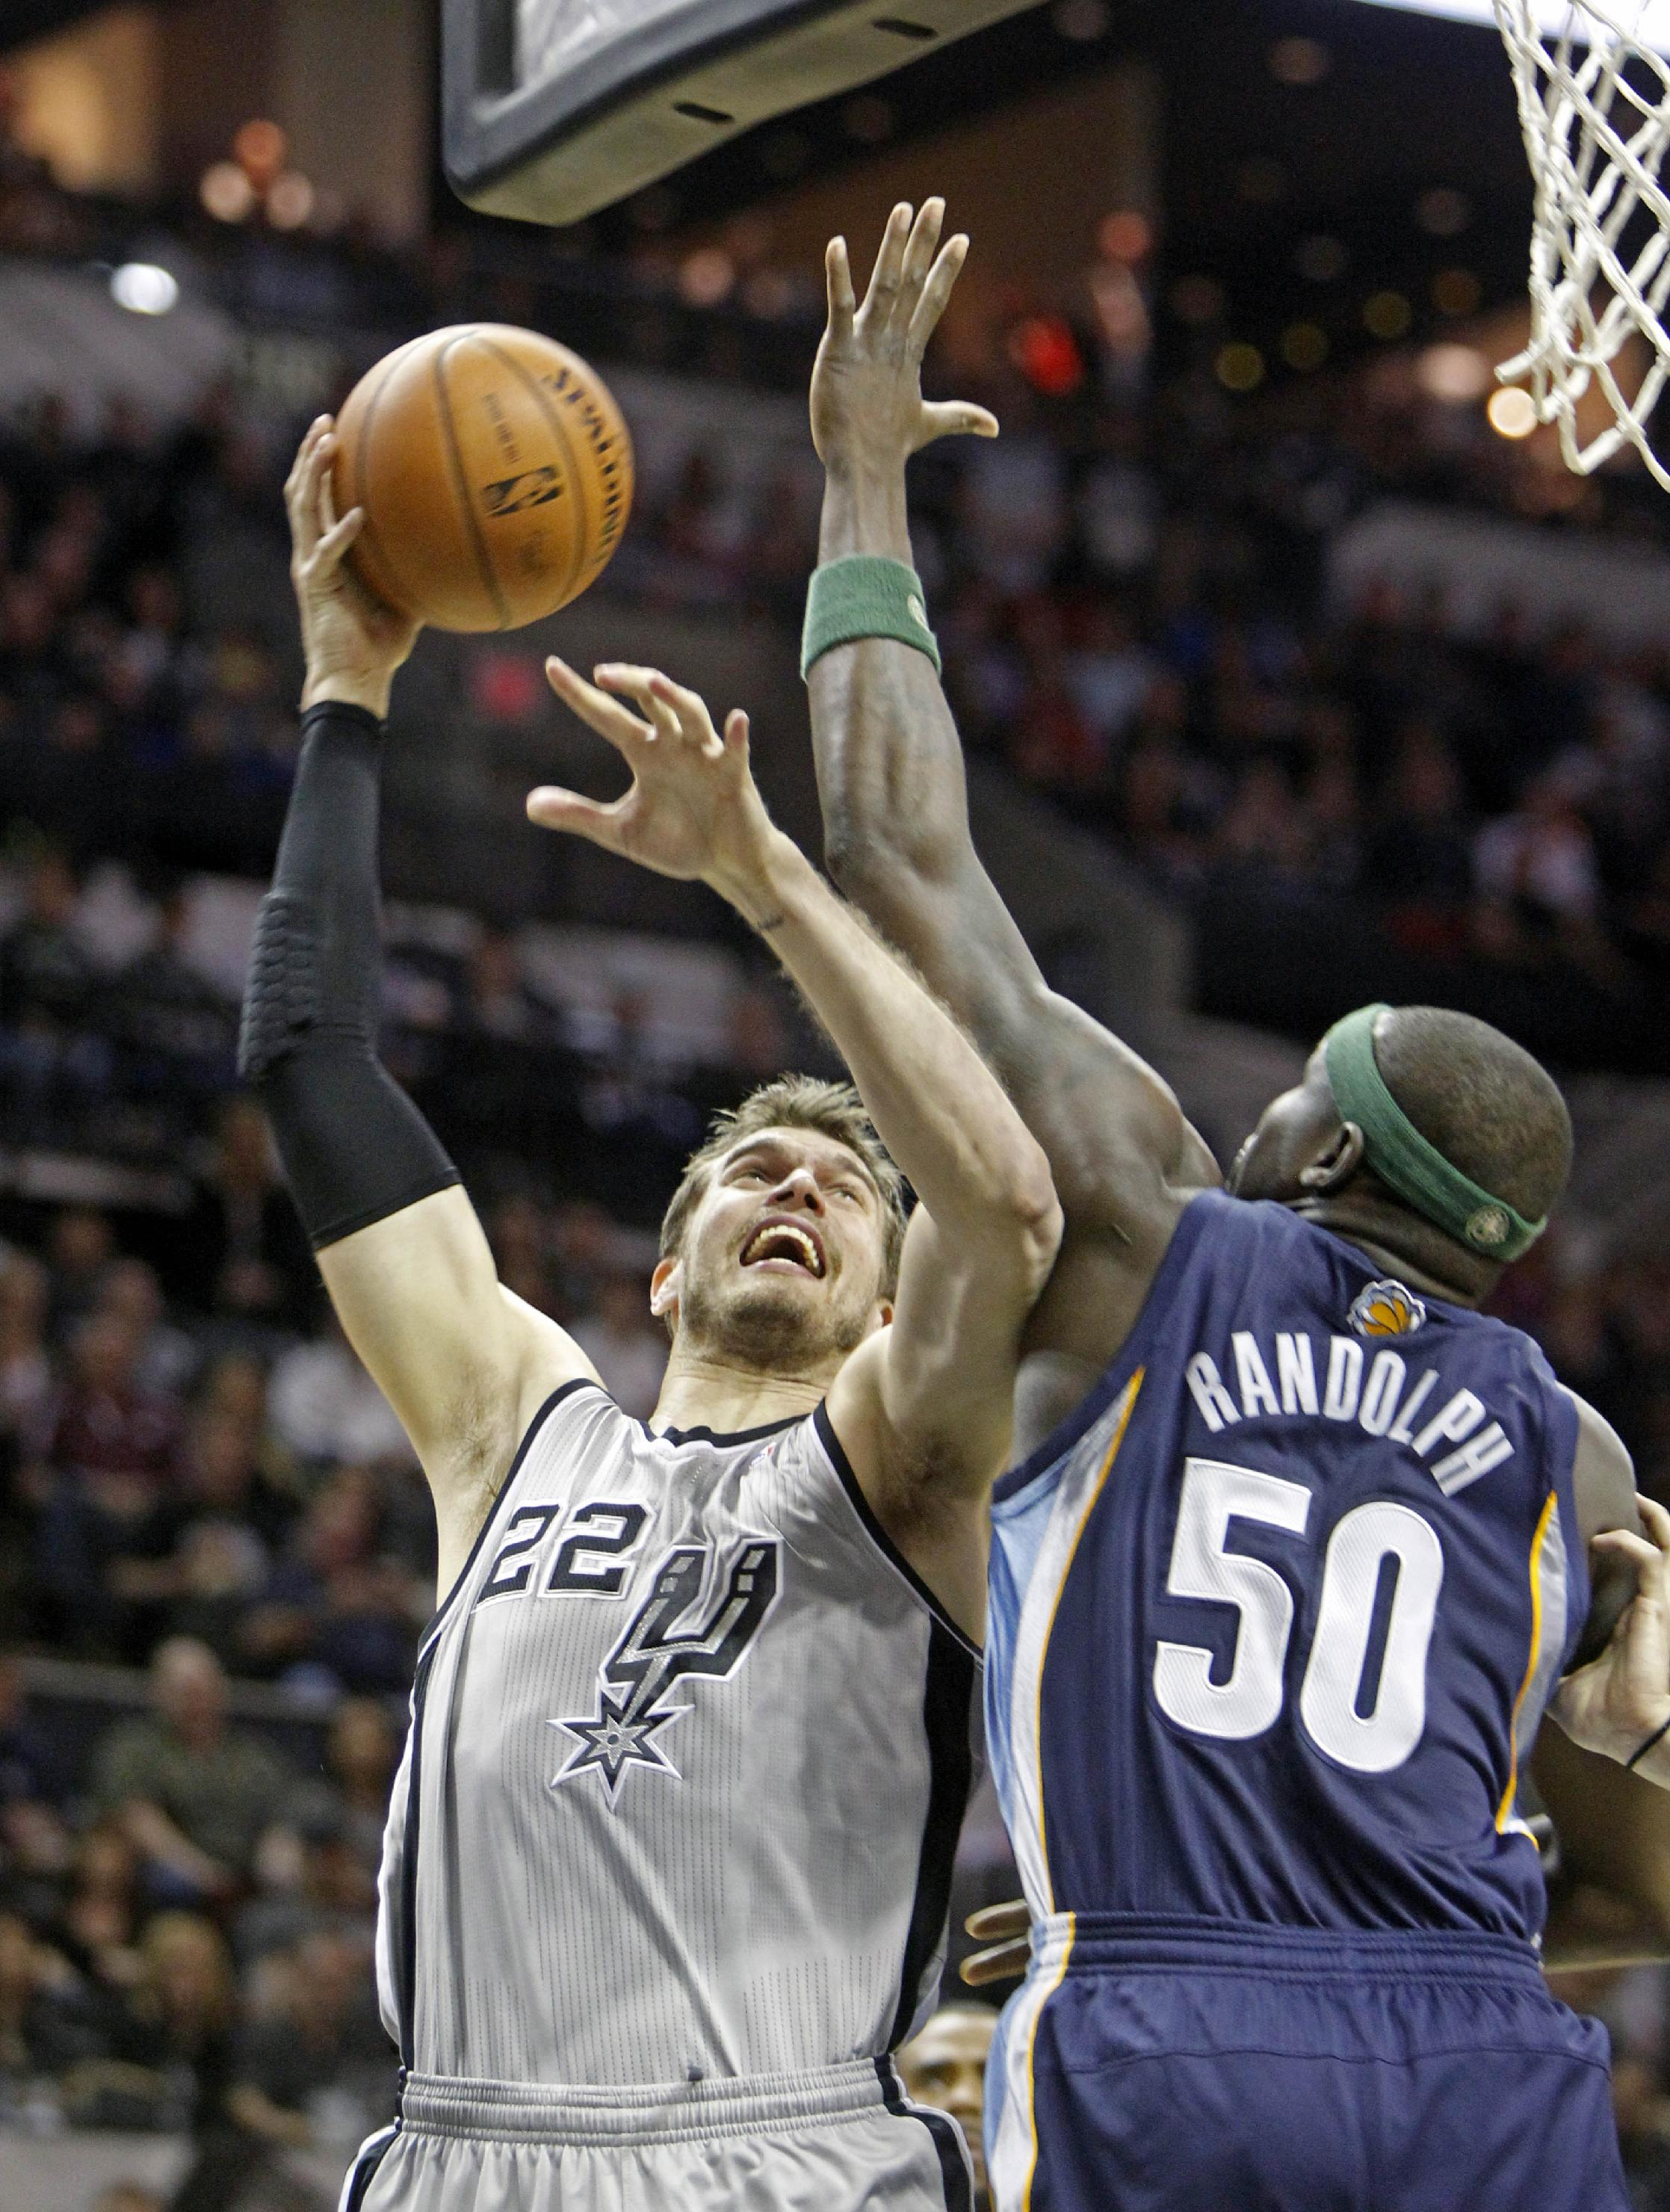 San Antonio Spurs' Tiago Splitter (22) goes up against the Memphis Grizzlies' Zach Randolph (50) during the first quarter of an NBA basketball game, Sunday, April 6, 2014, in San Antonio